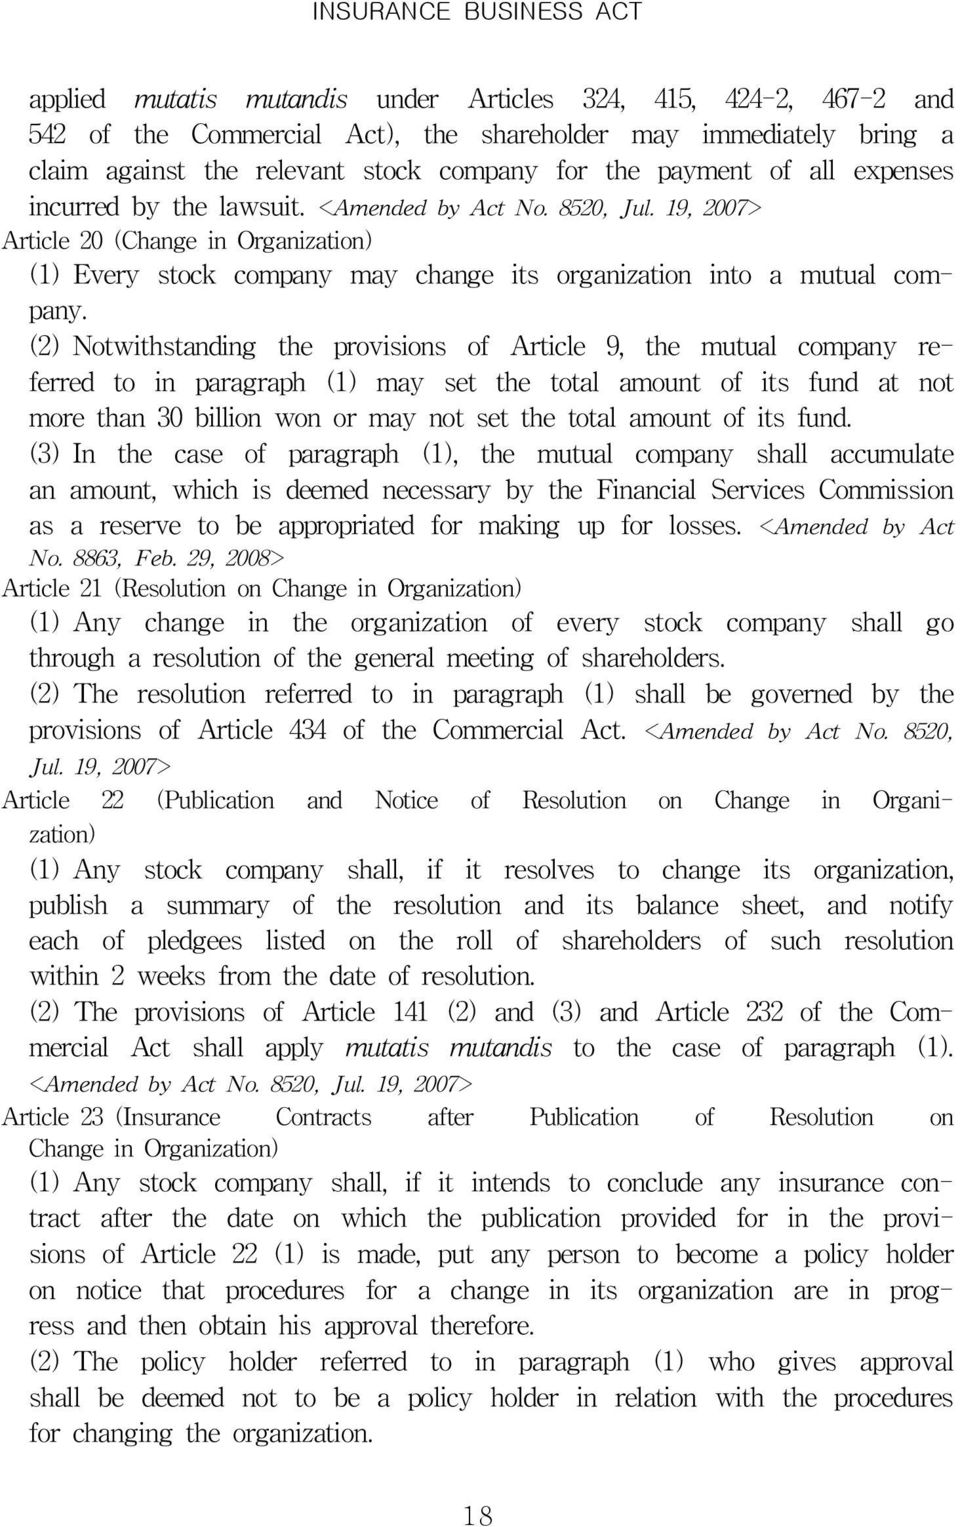 (2) Notwithstanding the provisions of Article 9, the mutual company referred to in paragraph (1) may set the total amount of its fund at not more than 30 billion won or may not set the total amount